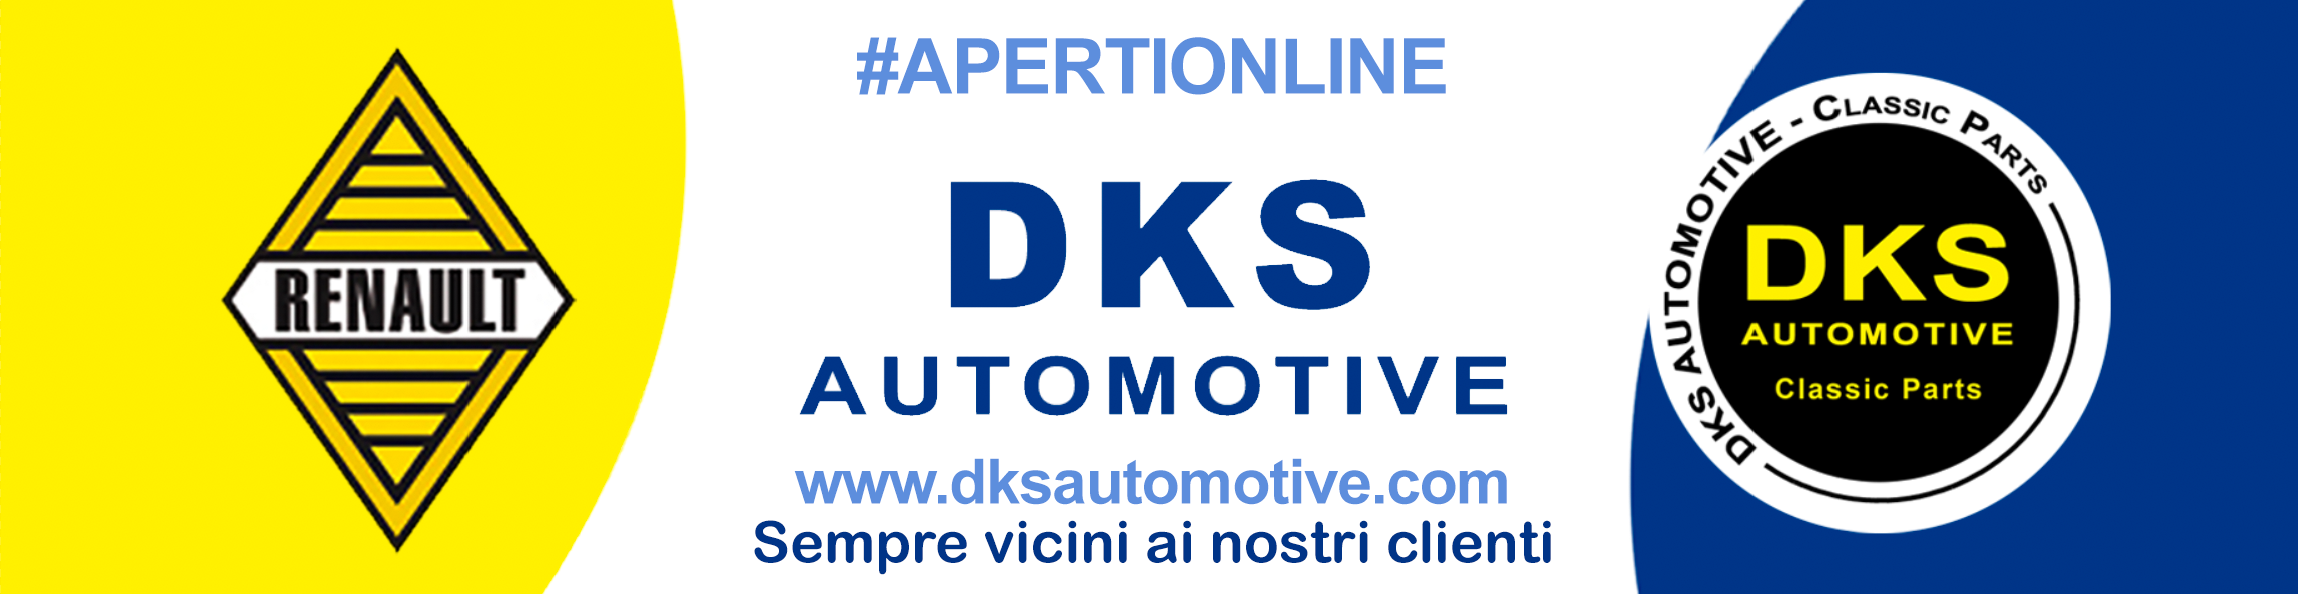 DKS Automotive - spare parts ricambi R4 renault renualt4 citroen 2cv